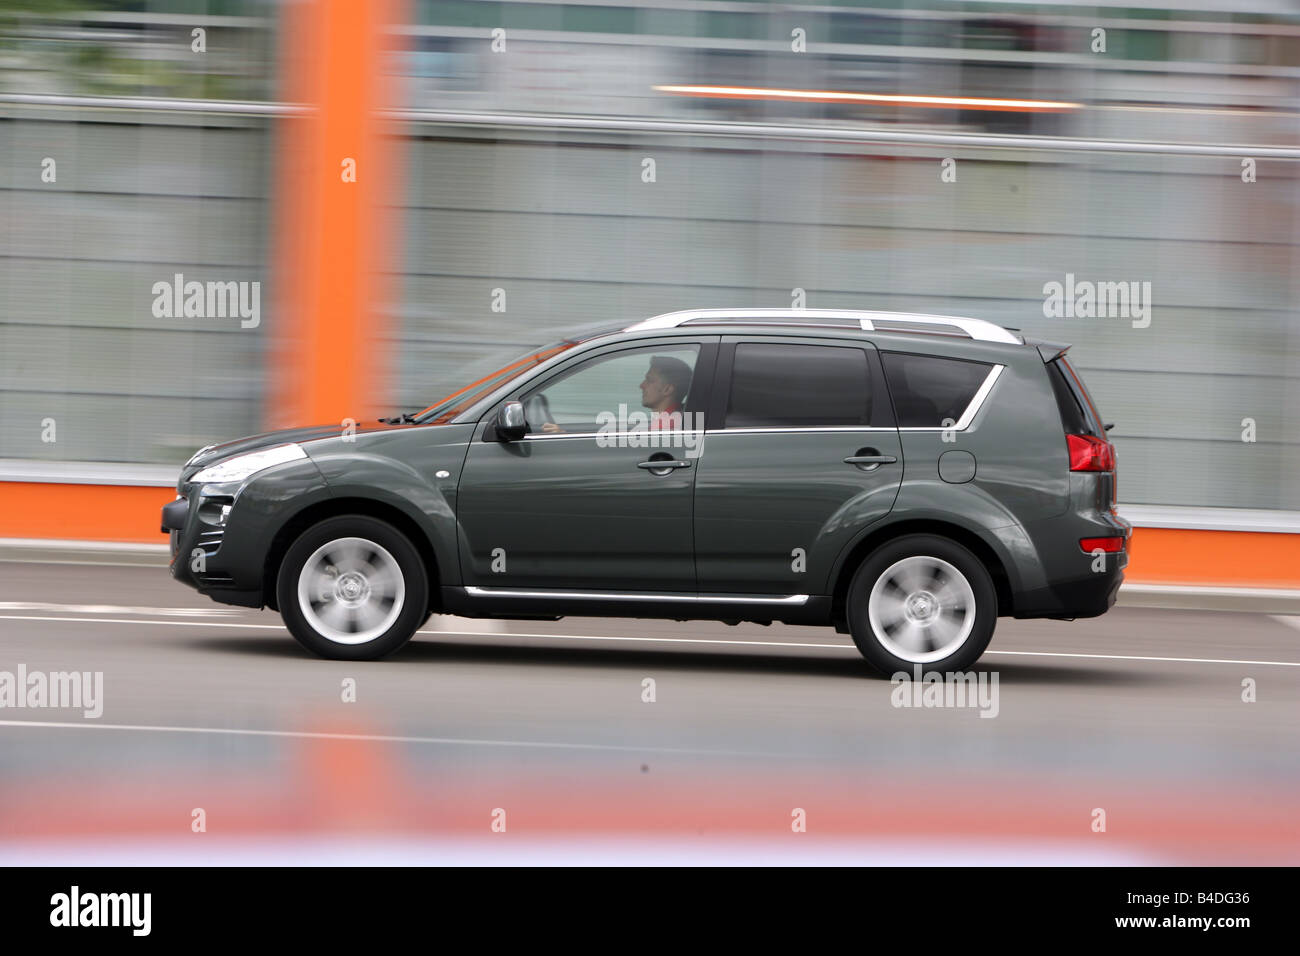 Peugeot 4007 HDi FAP 155 Platinum, model year 2007-, anthracite, driving, side view, City - Stock Image